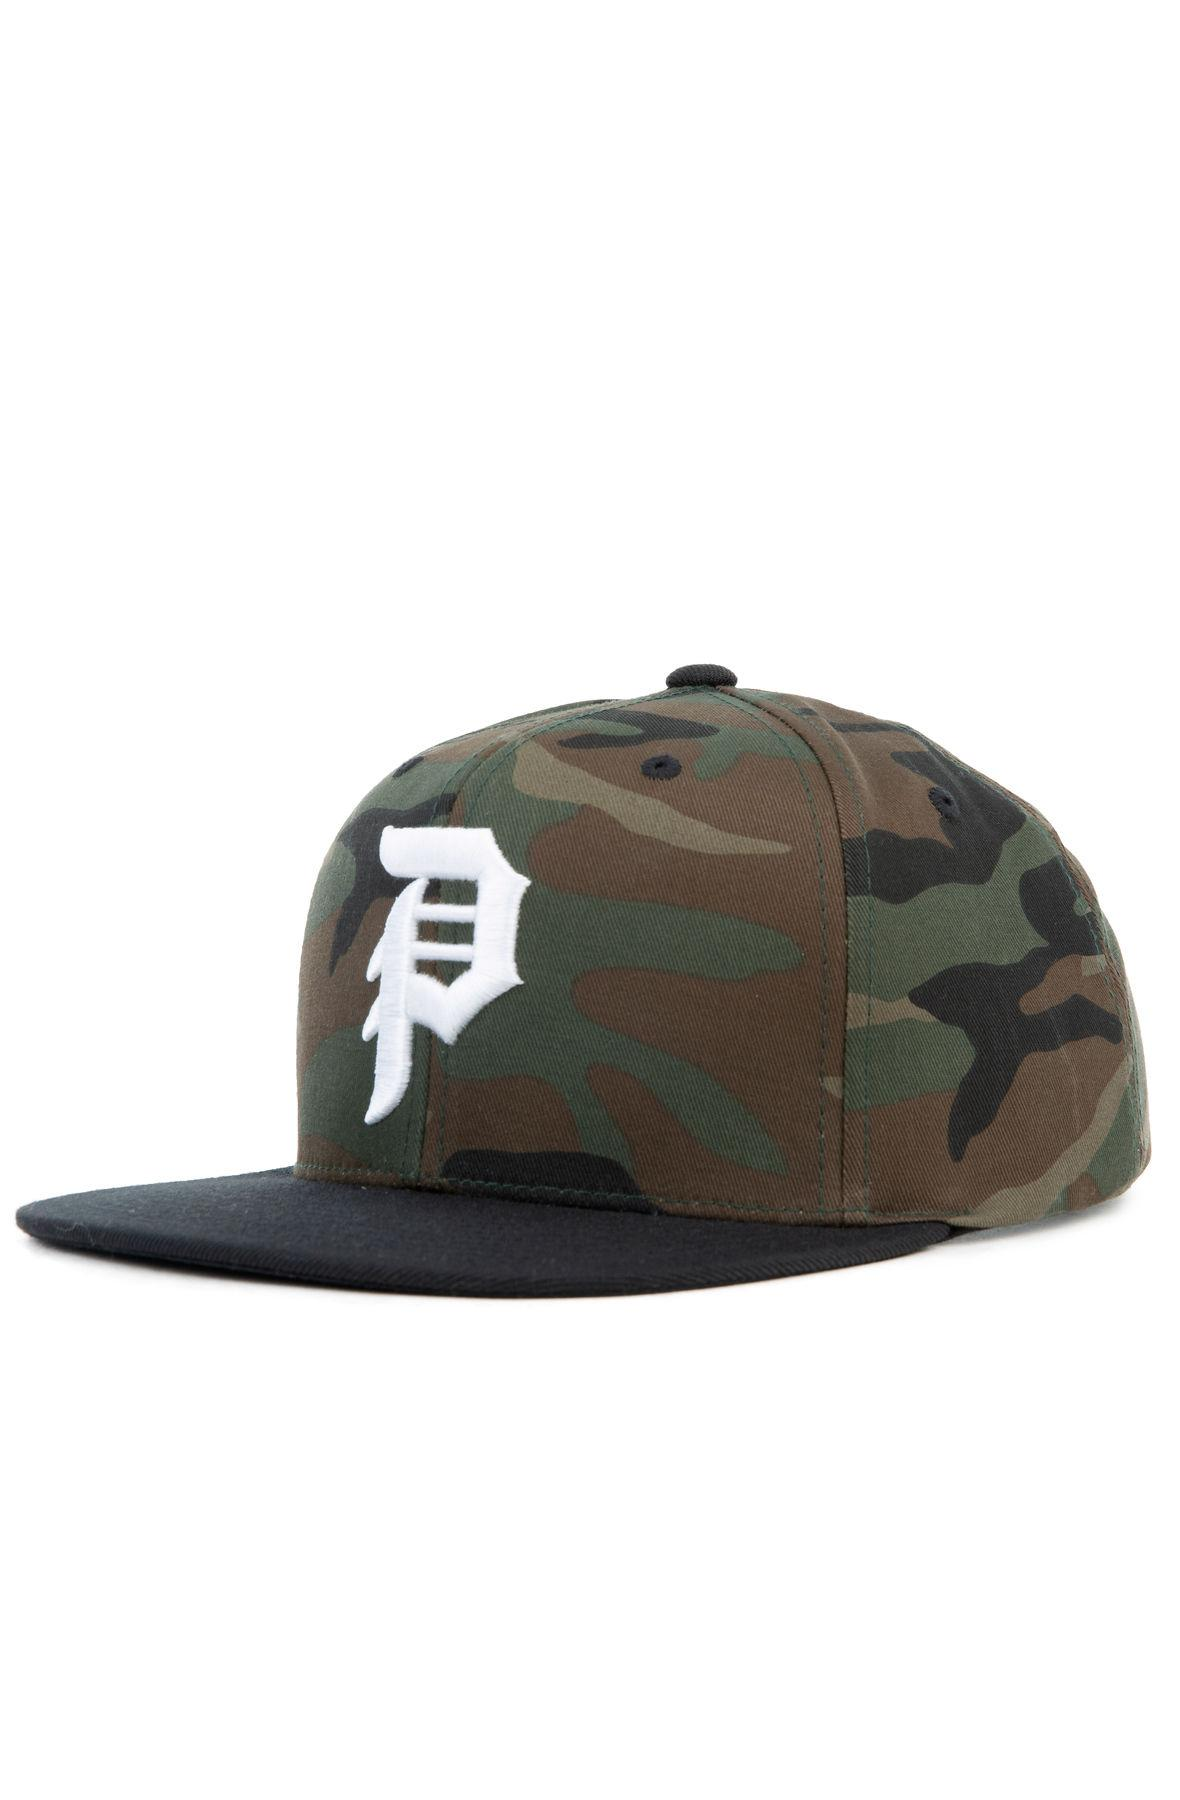 ad1bd91e2 Lyst - Primitive The Dirty P Snapback In Camo in Green for Men